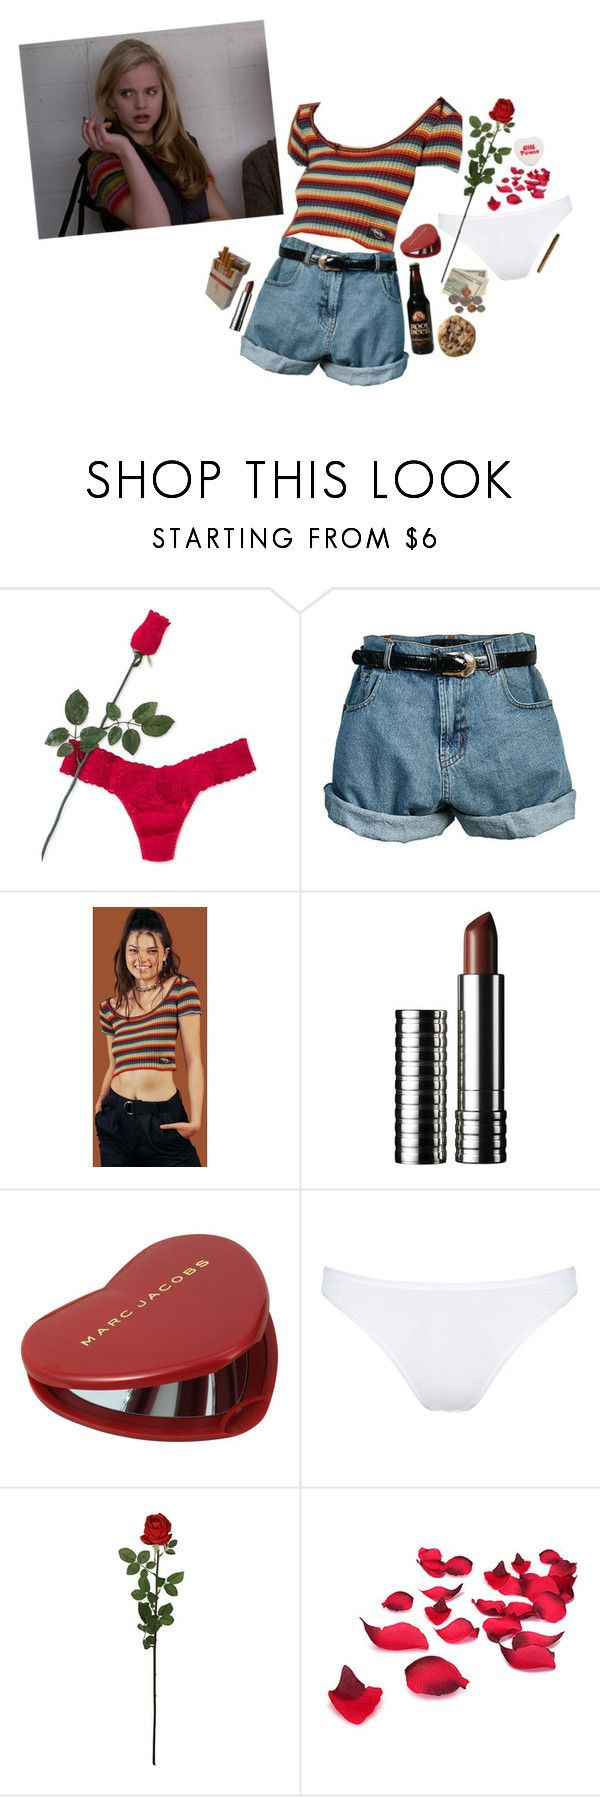 """""""american beauty"""" by amberundead ❤ liked on Polyvore featuring Hanky Panky, Retrò, UNIF, Clinique, Marc Jacobs, Hanro, Laura Cole and americanbeauty"""